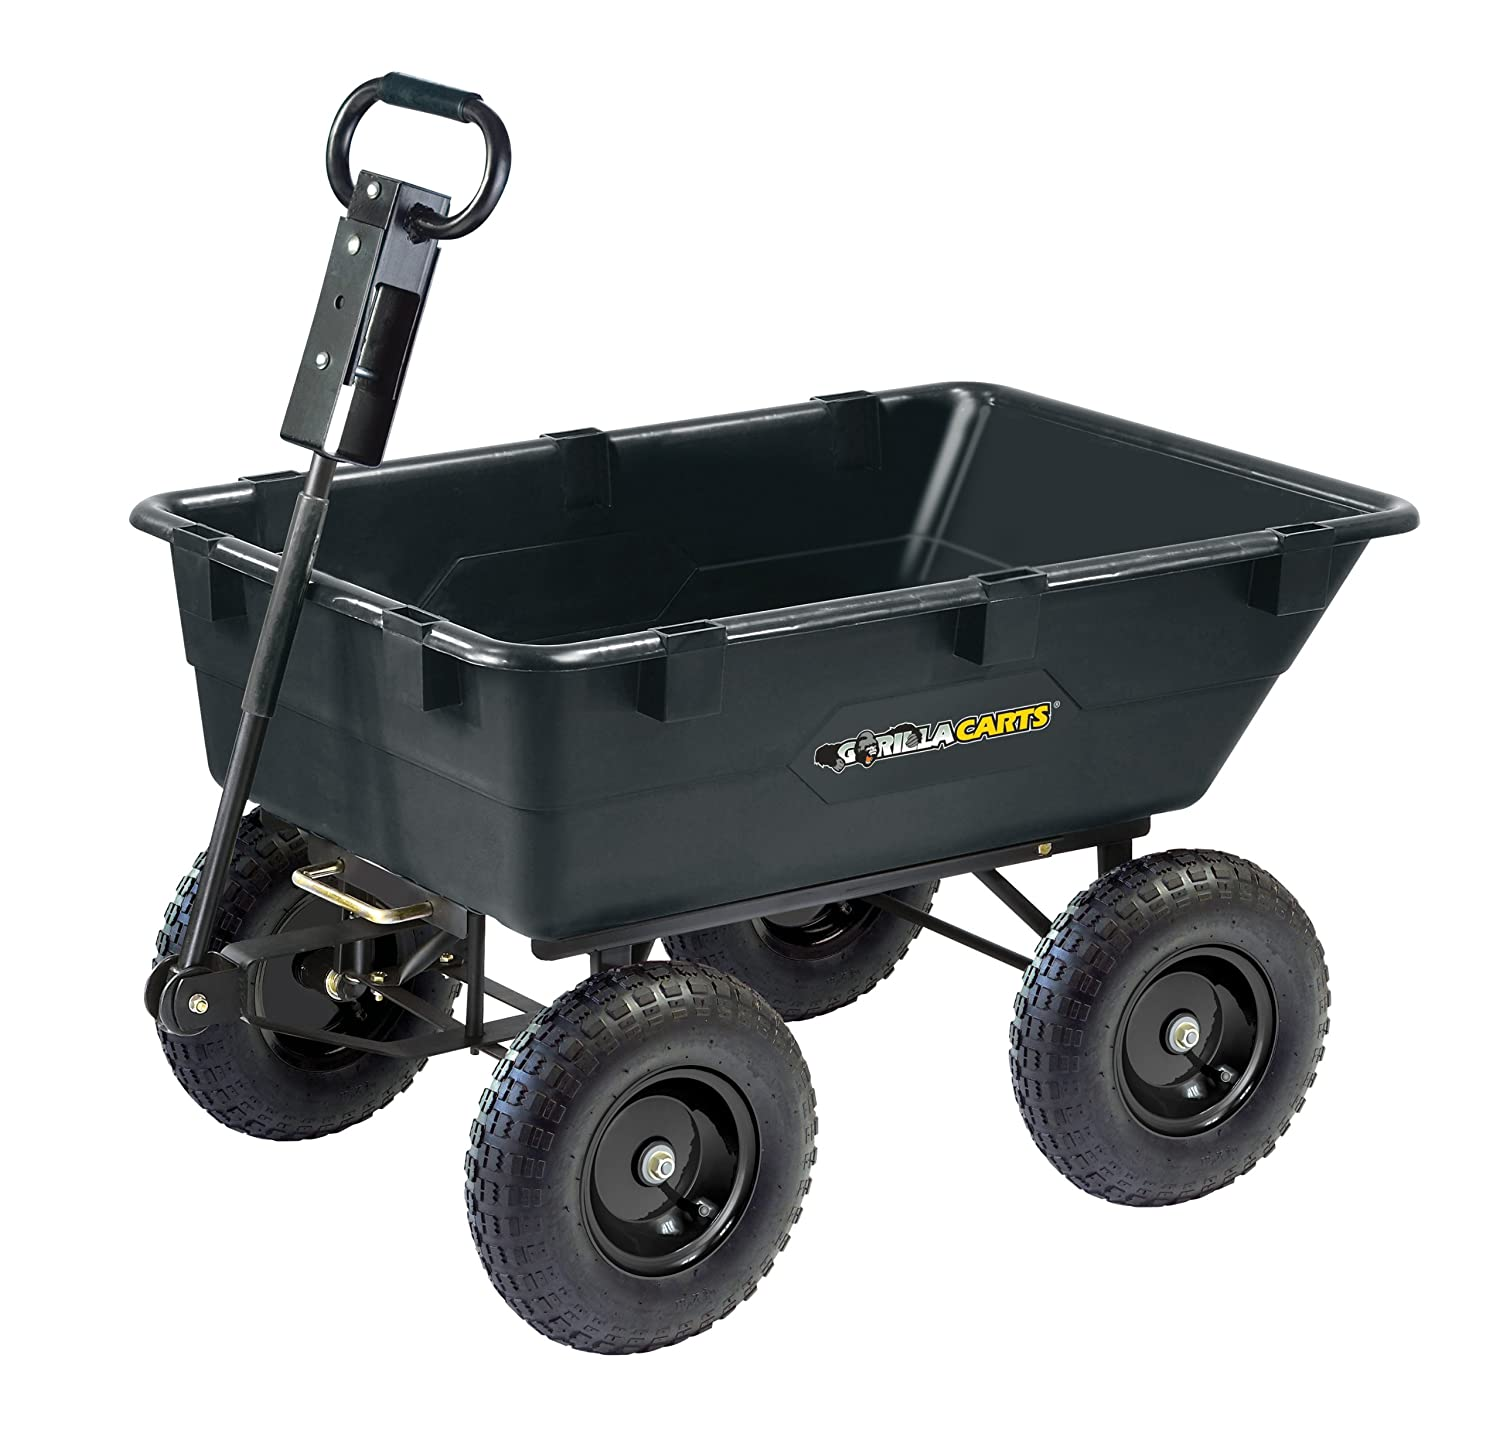 Gorilla Carts GORR866D Heavy Duty Garden Poly Dump Cart